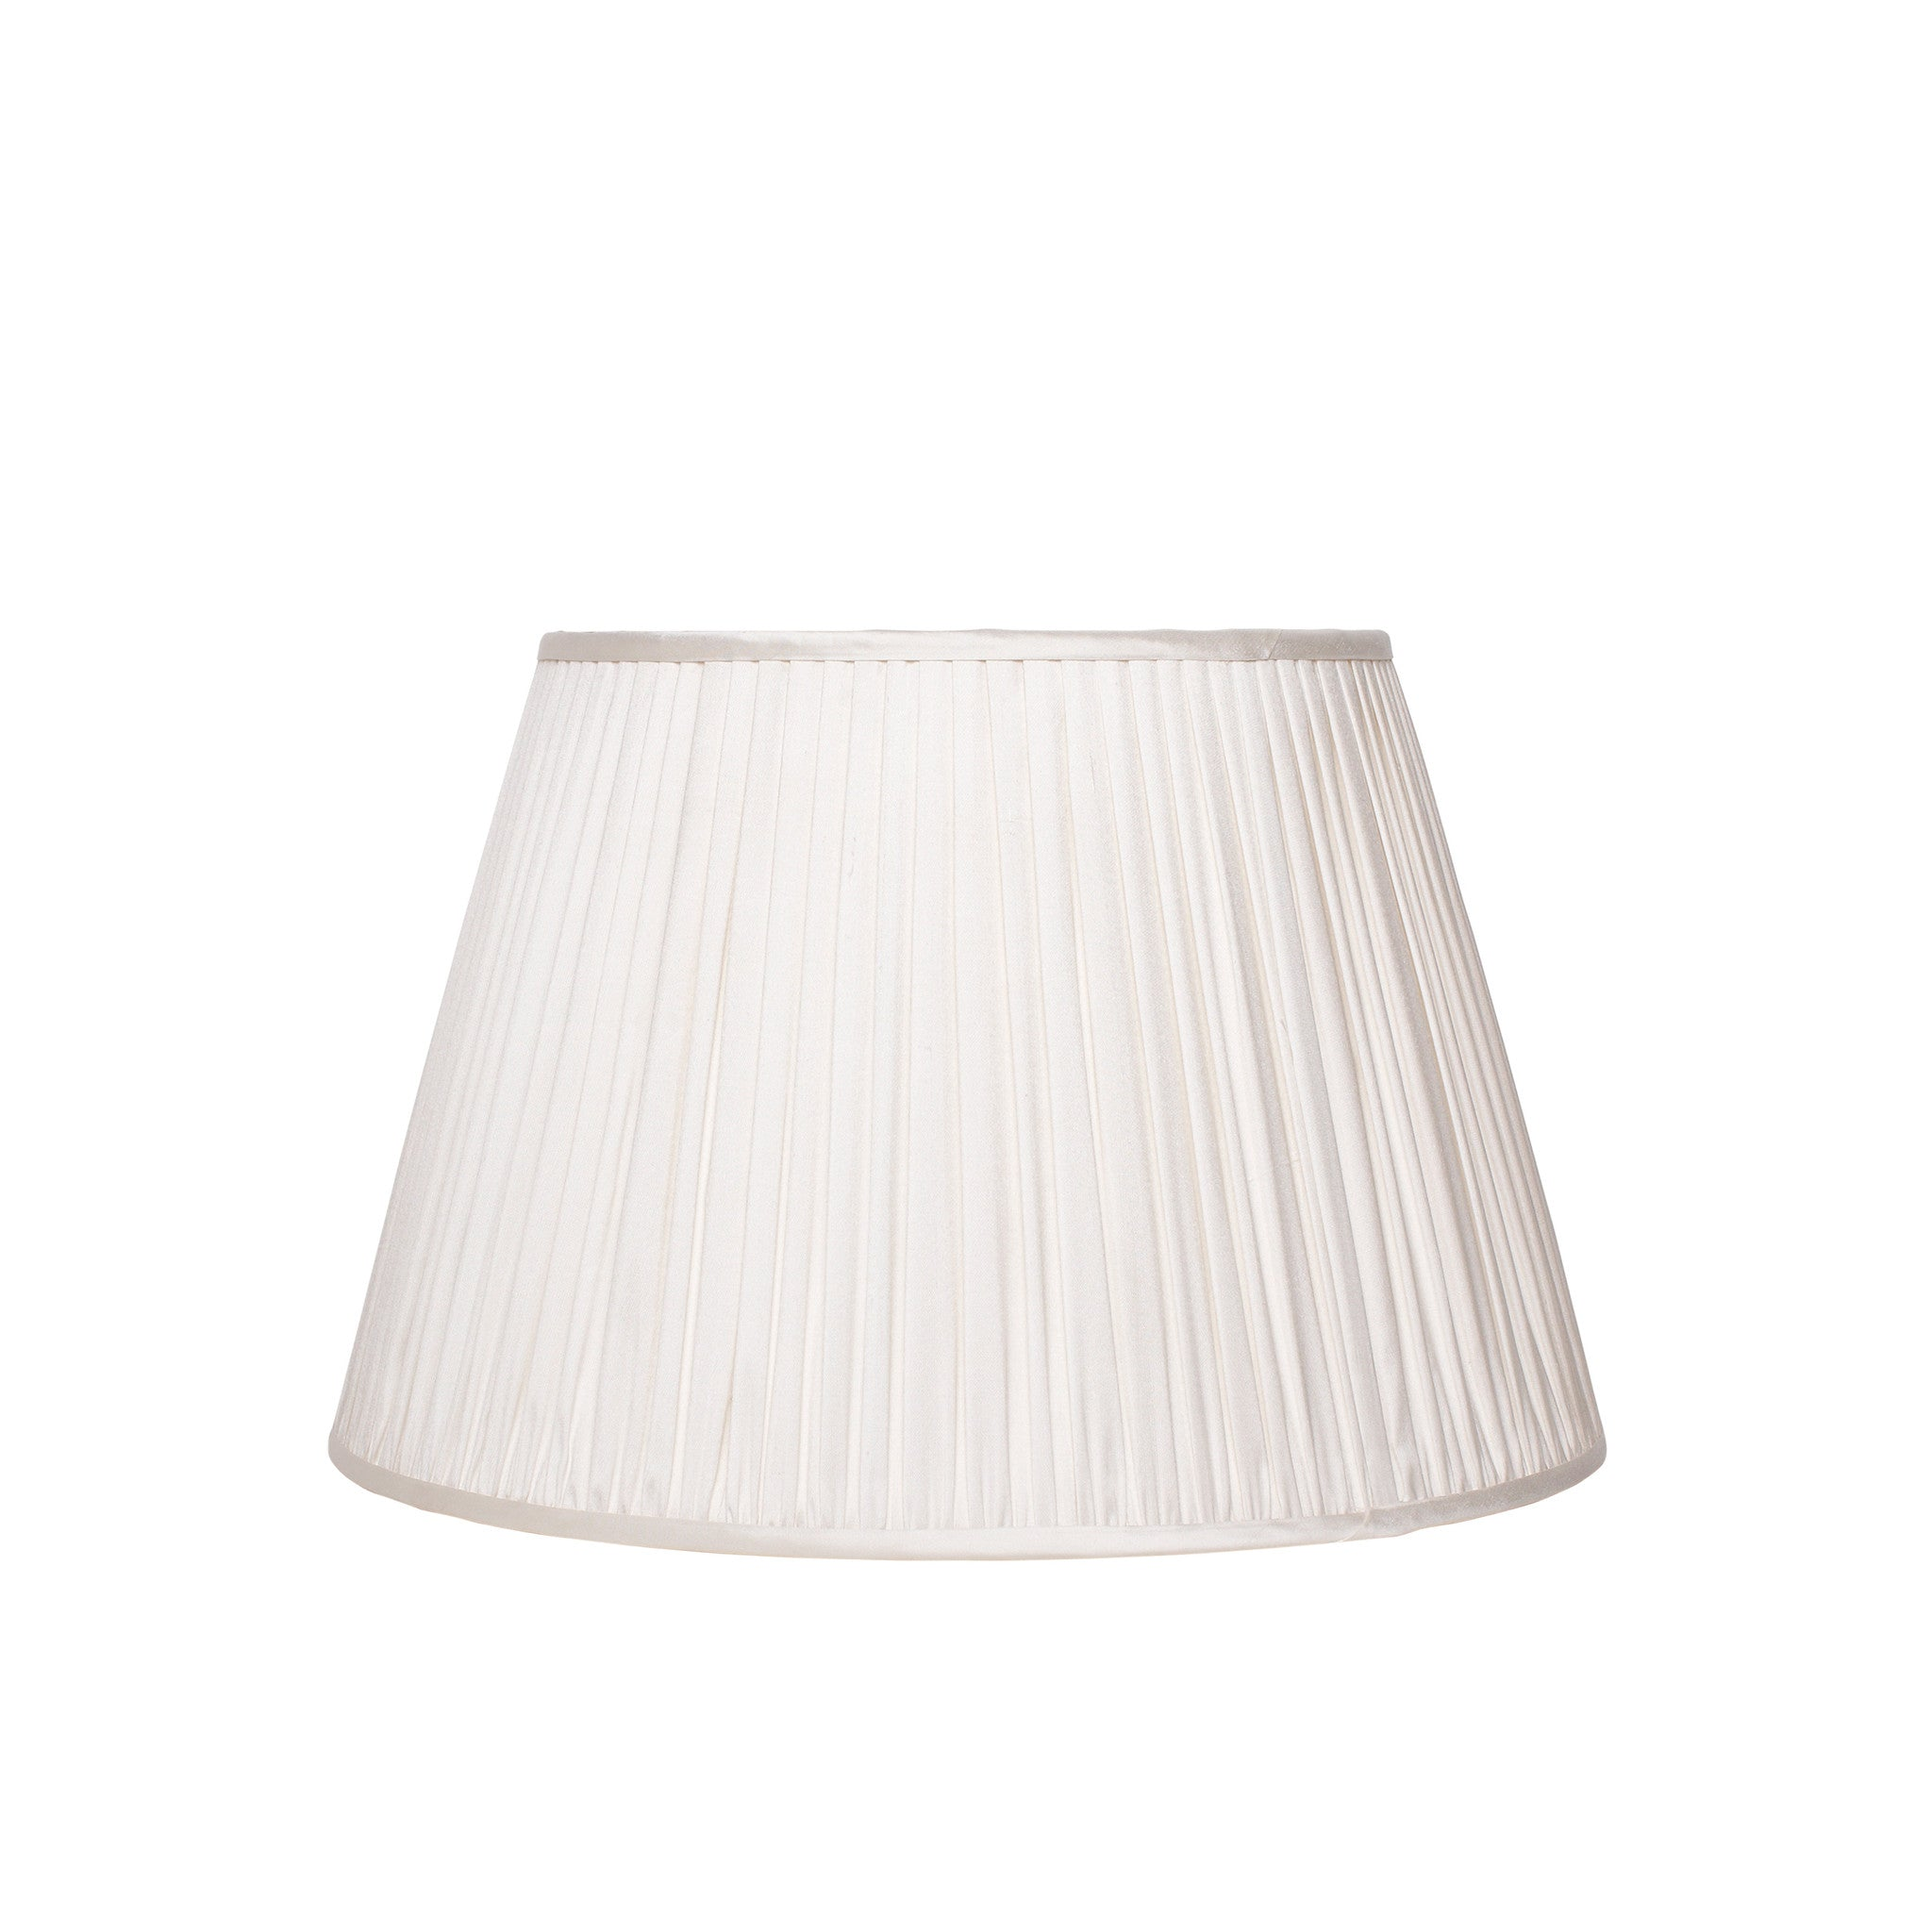 Gathered Silk Lampshade in Ivory